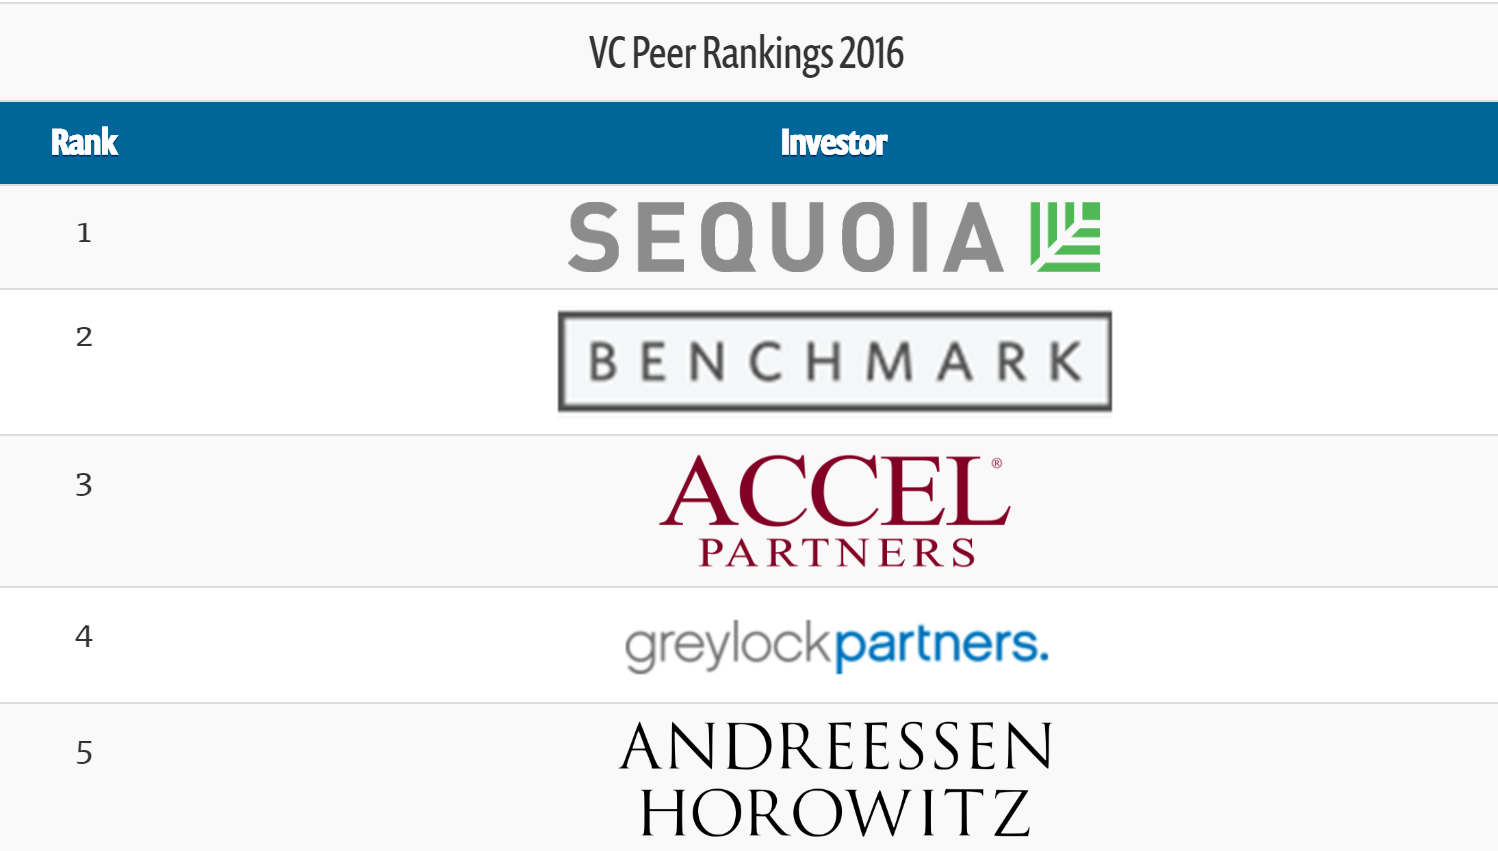 Sequoia Capital Named #1 VC